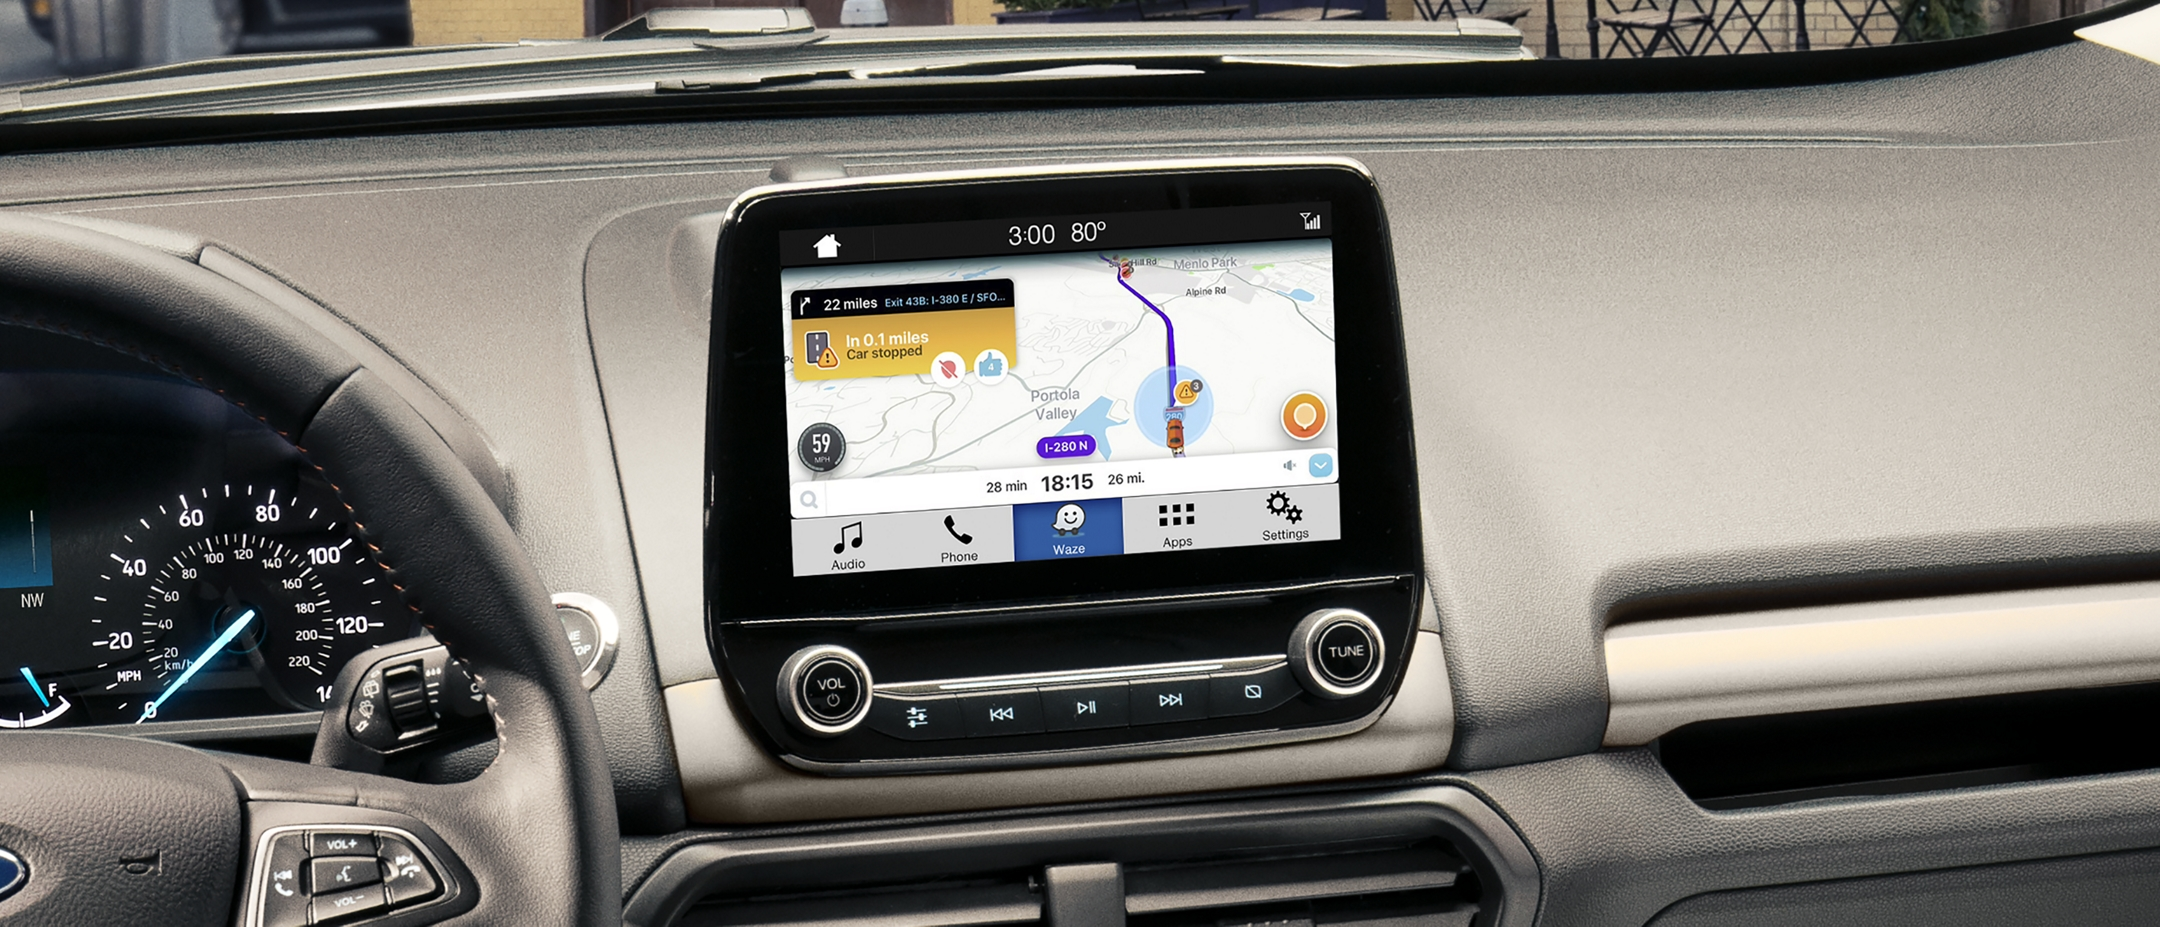 The front panel of the 2019 EcoSport with Waze navigational maps shown on the available 8 inch touchscreen